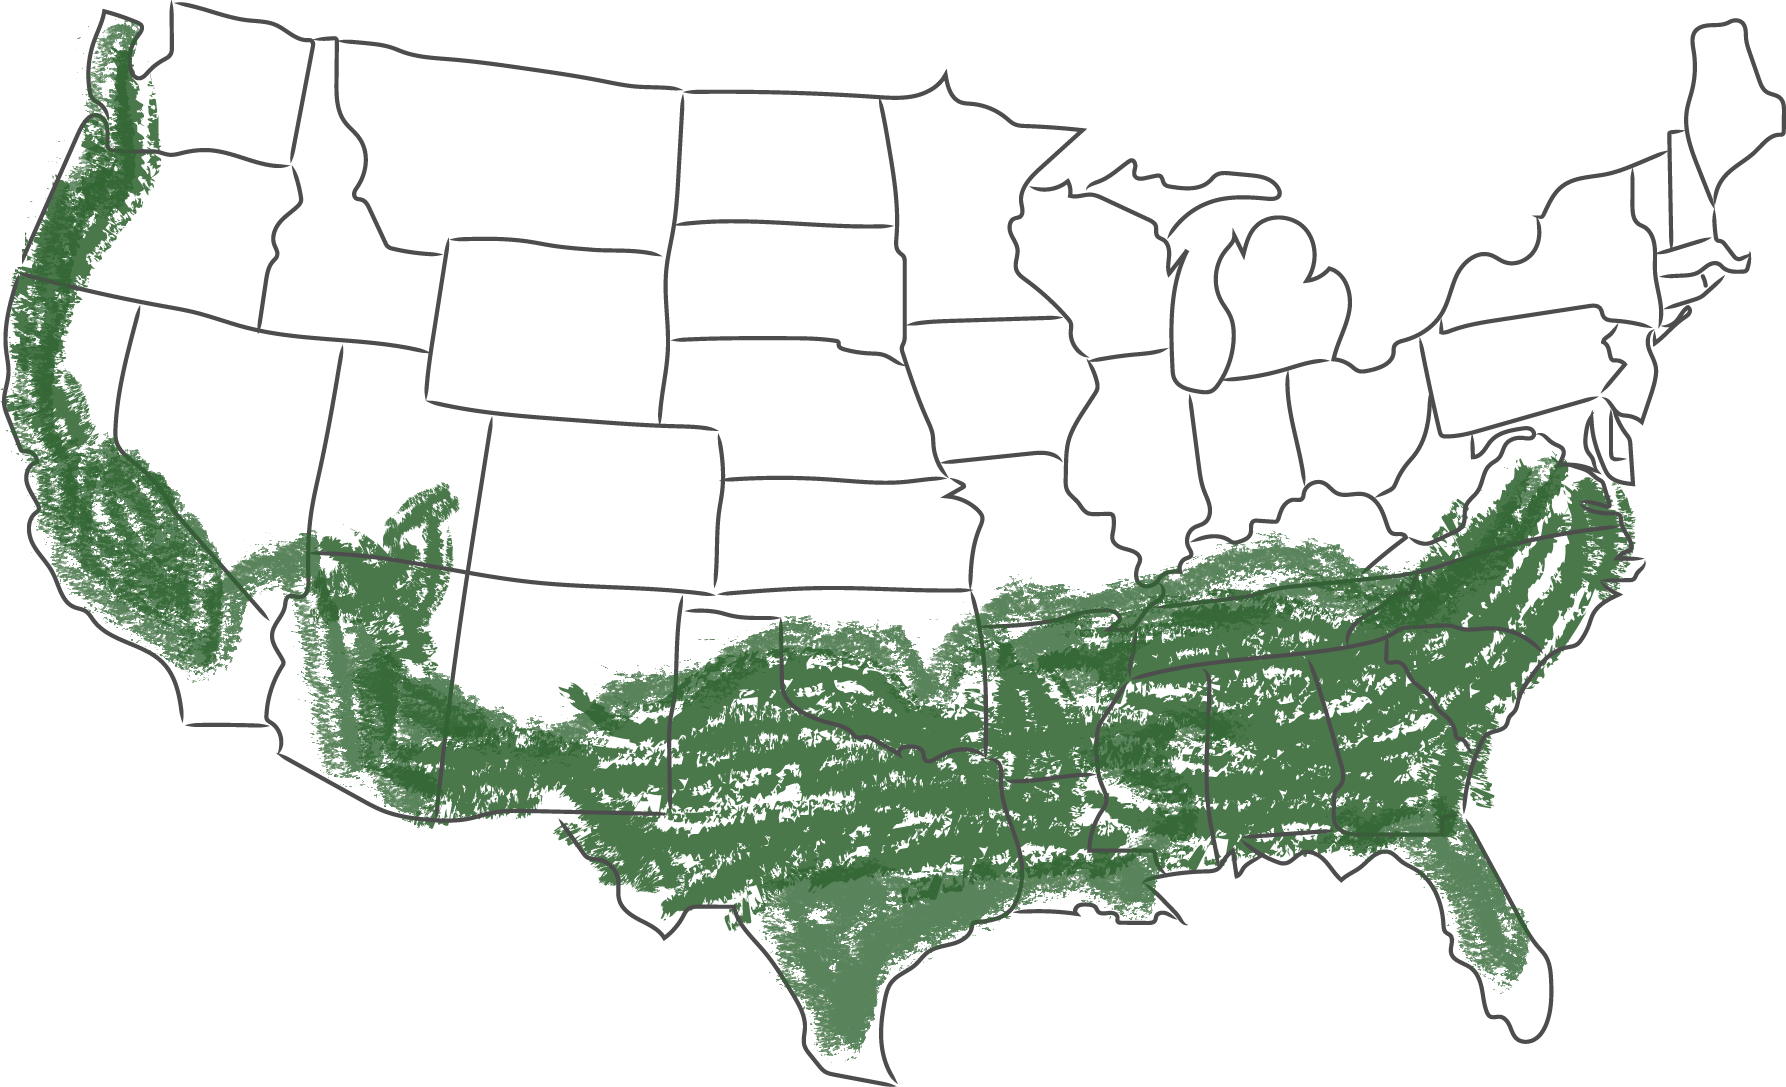 USA States map with the USDA Zones 7-9 marked in green